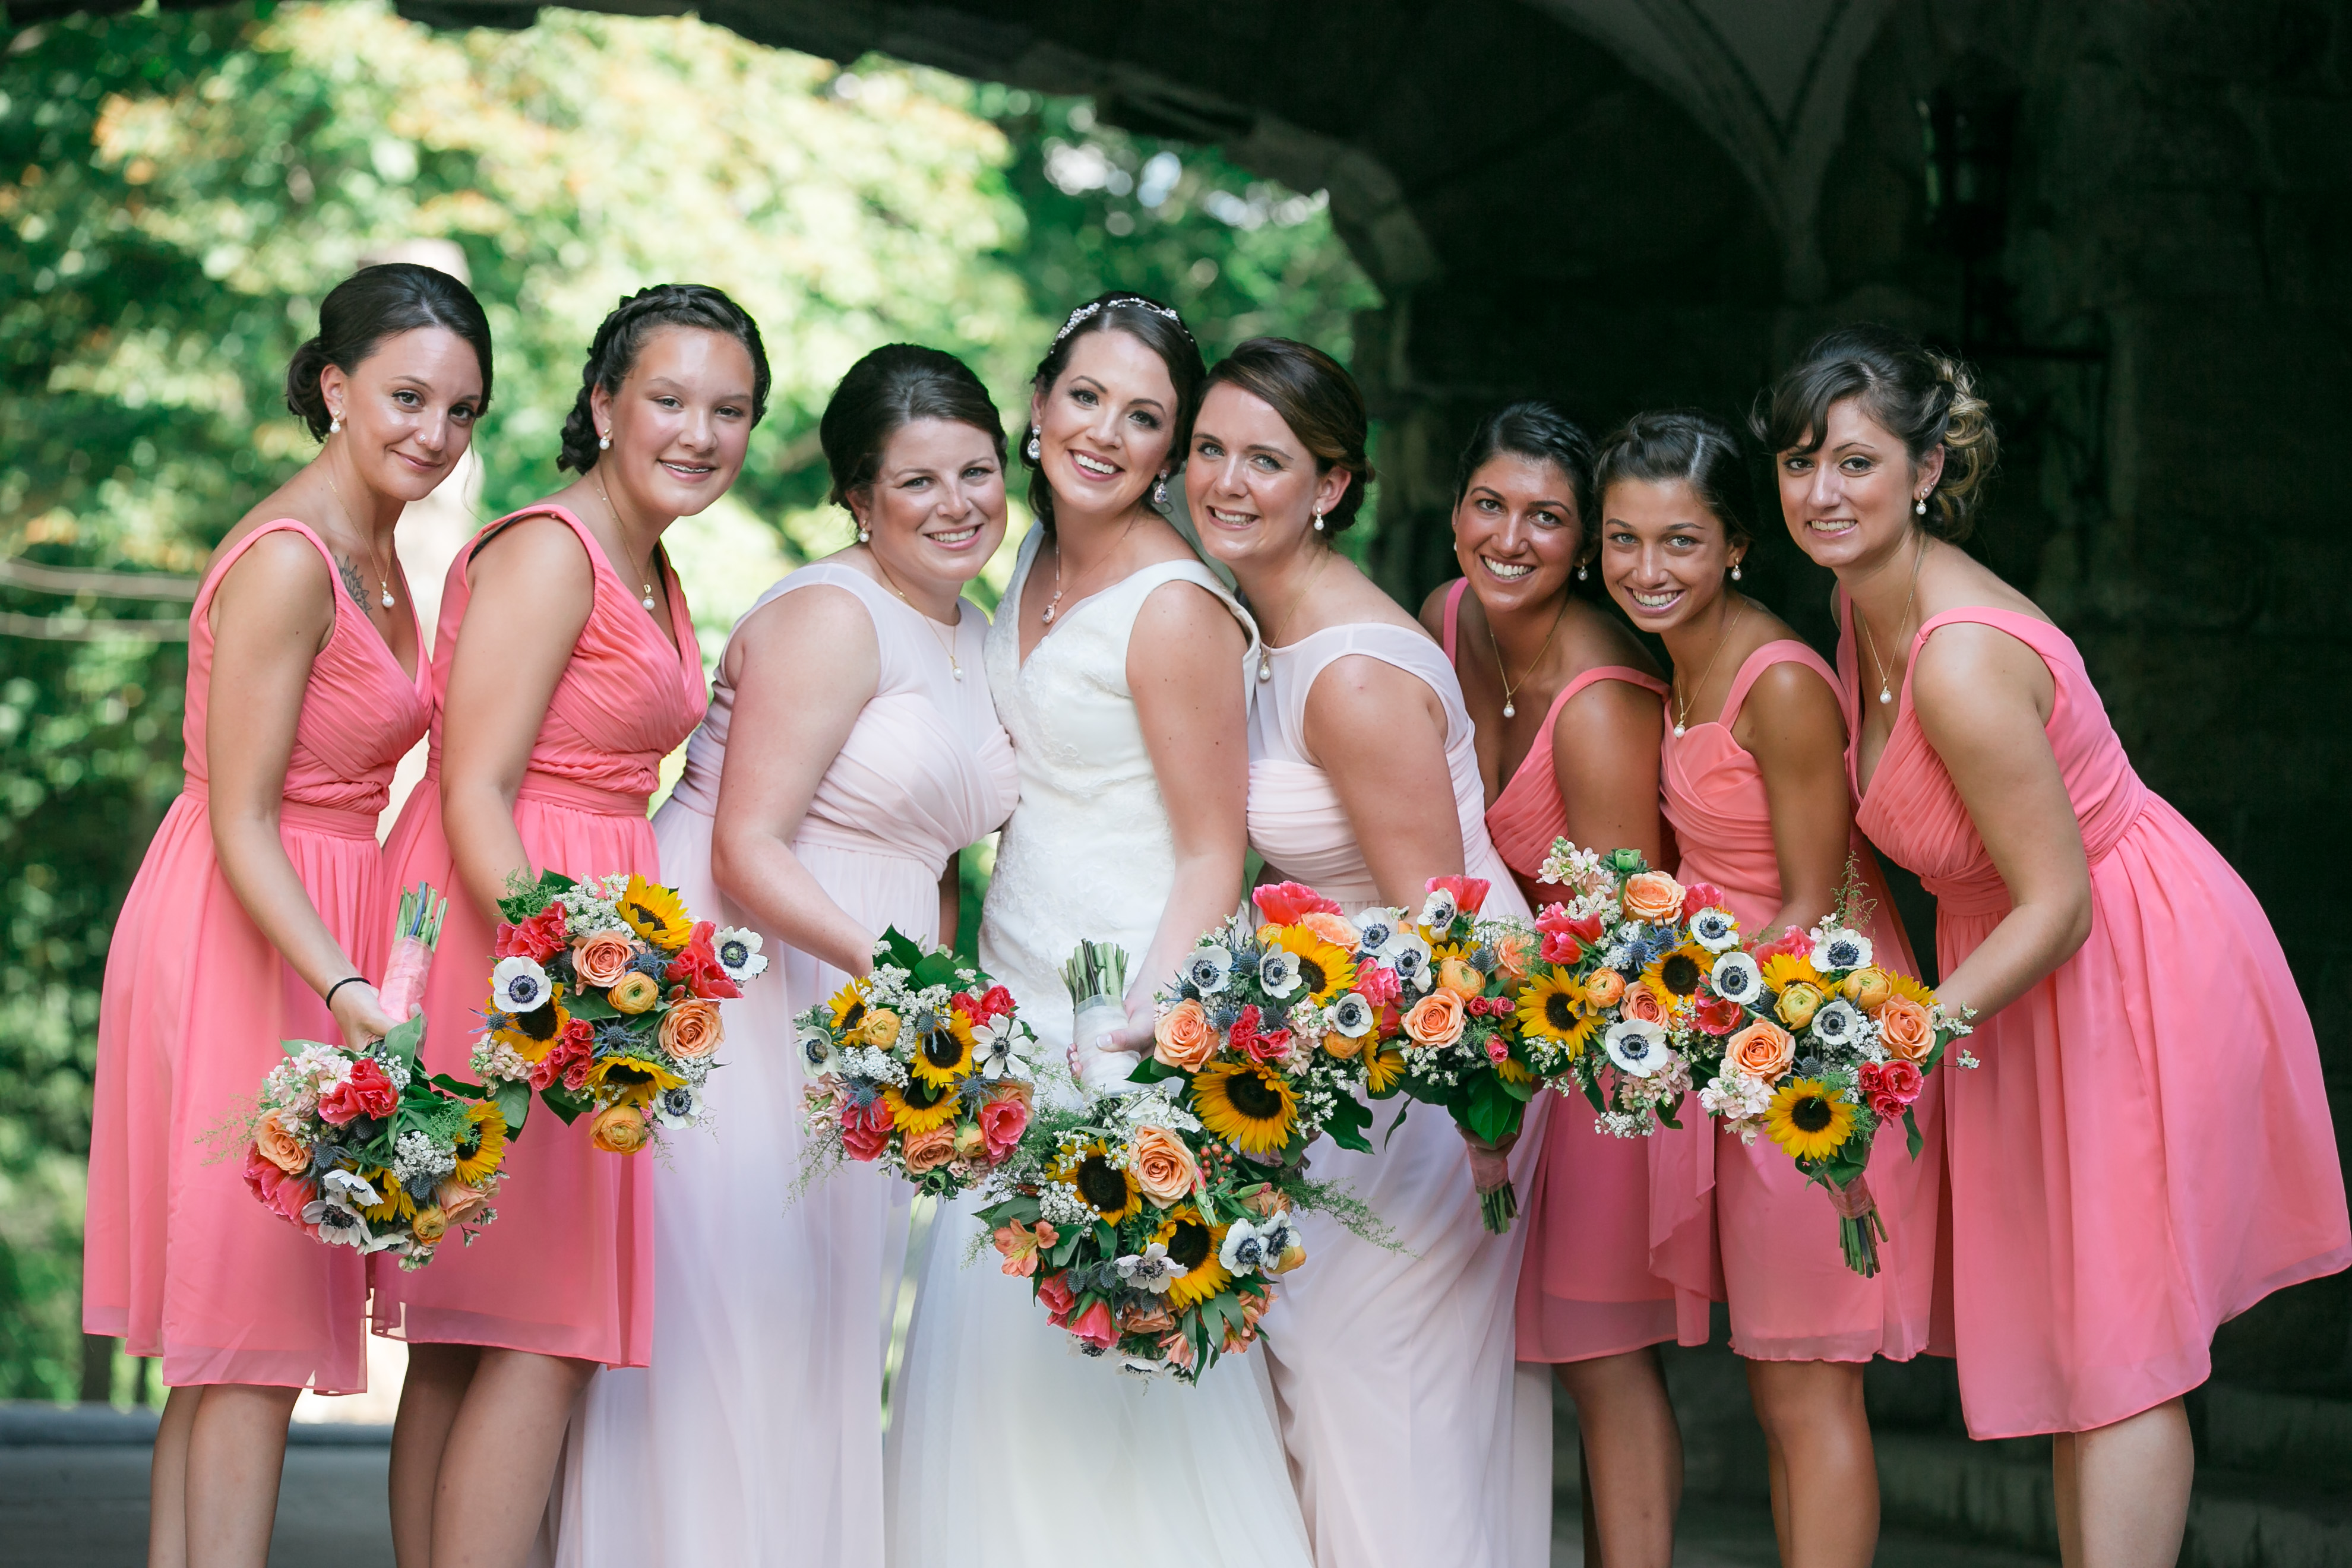 A Colorful Summer Wedding at Arrow Park